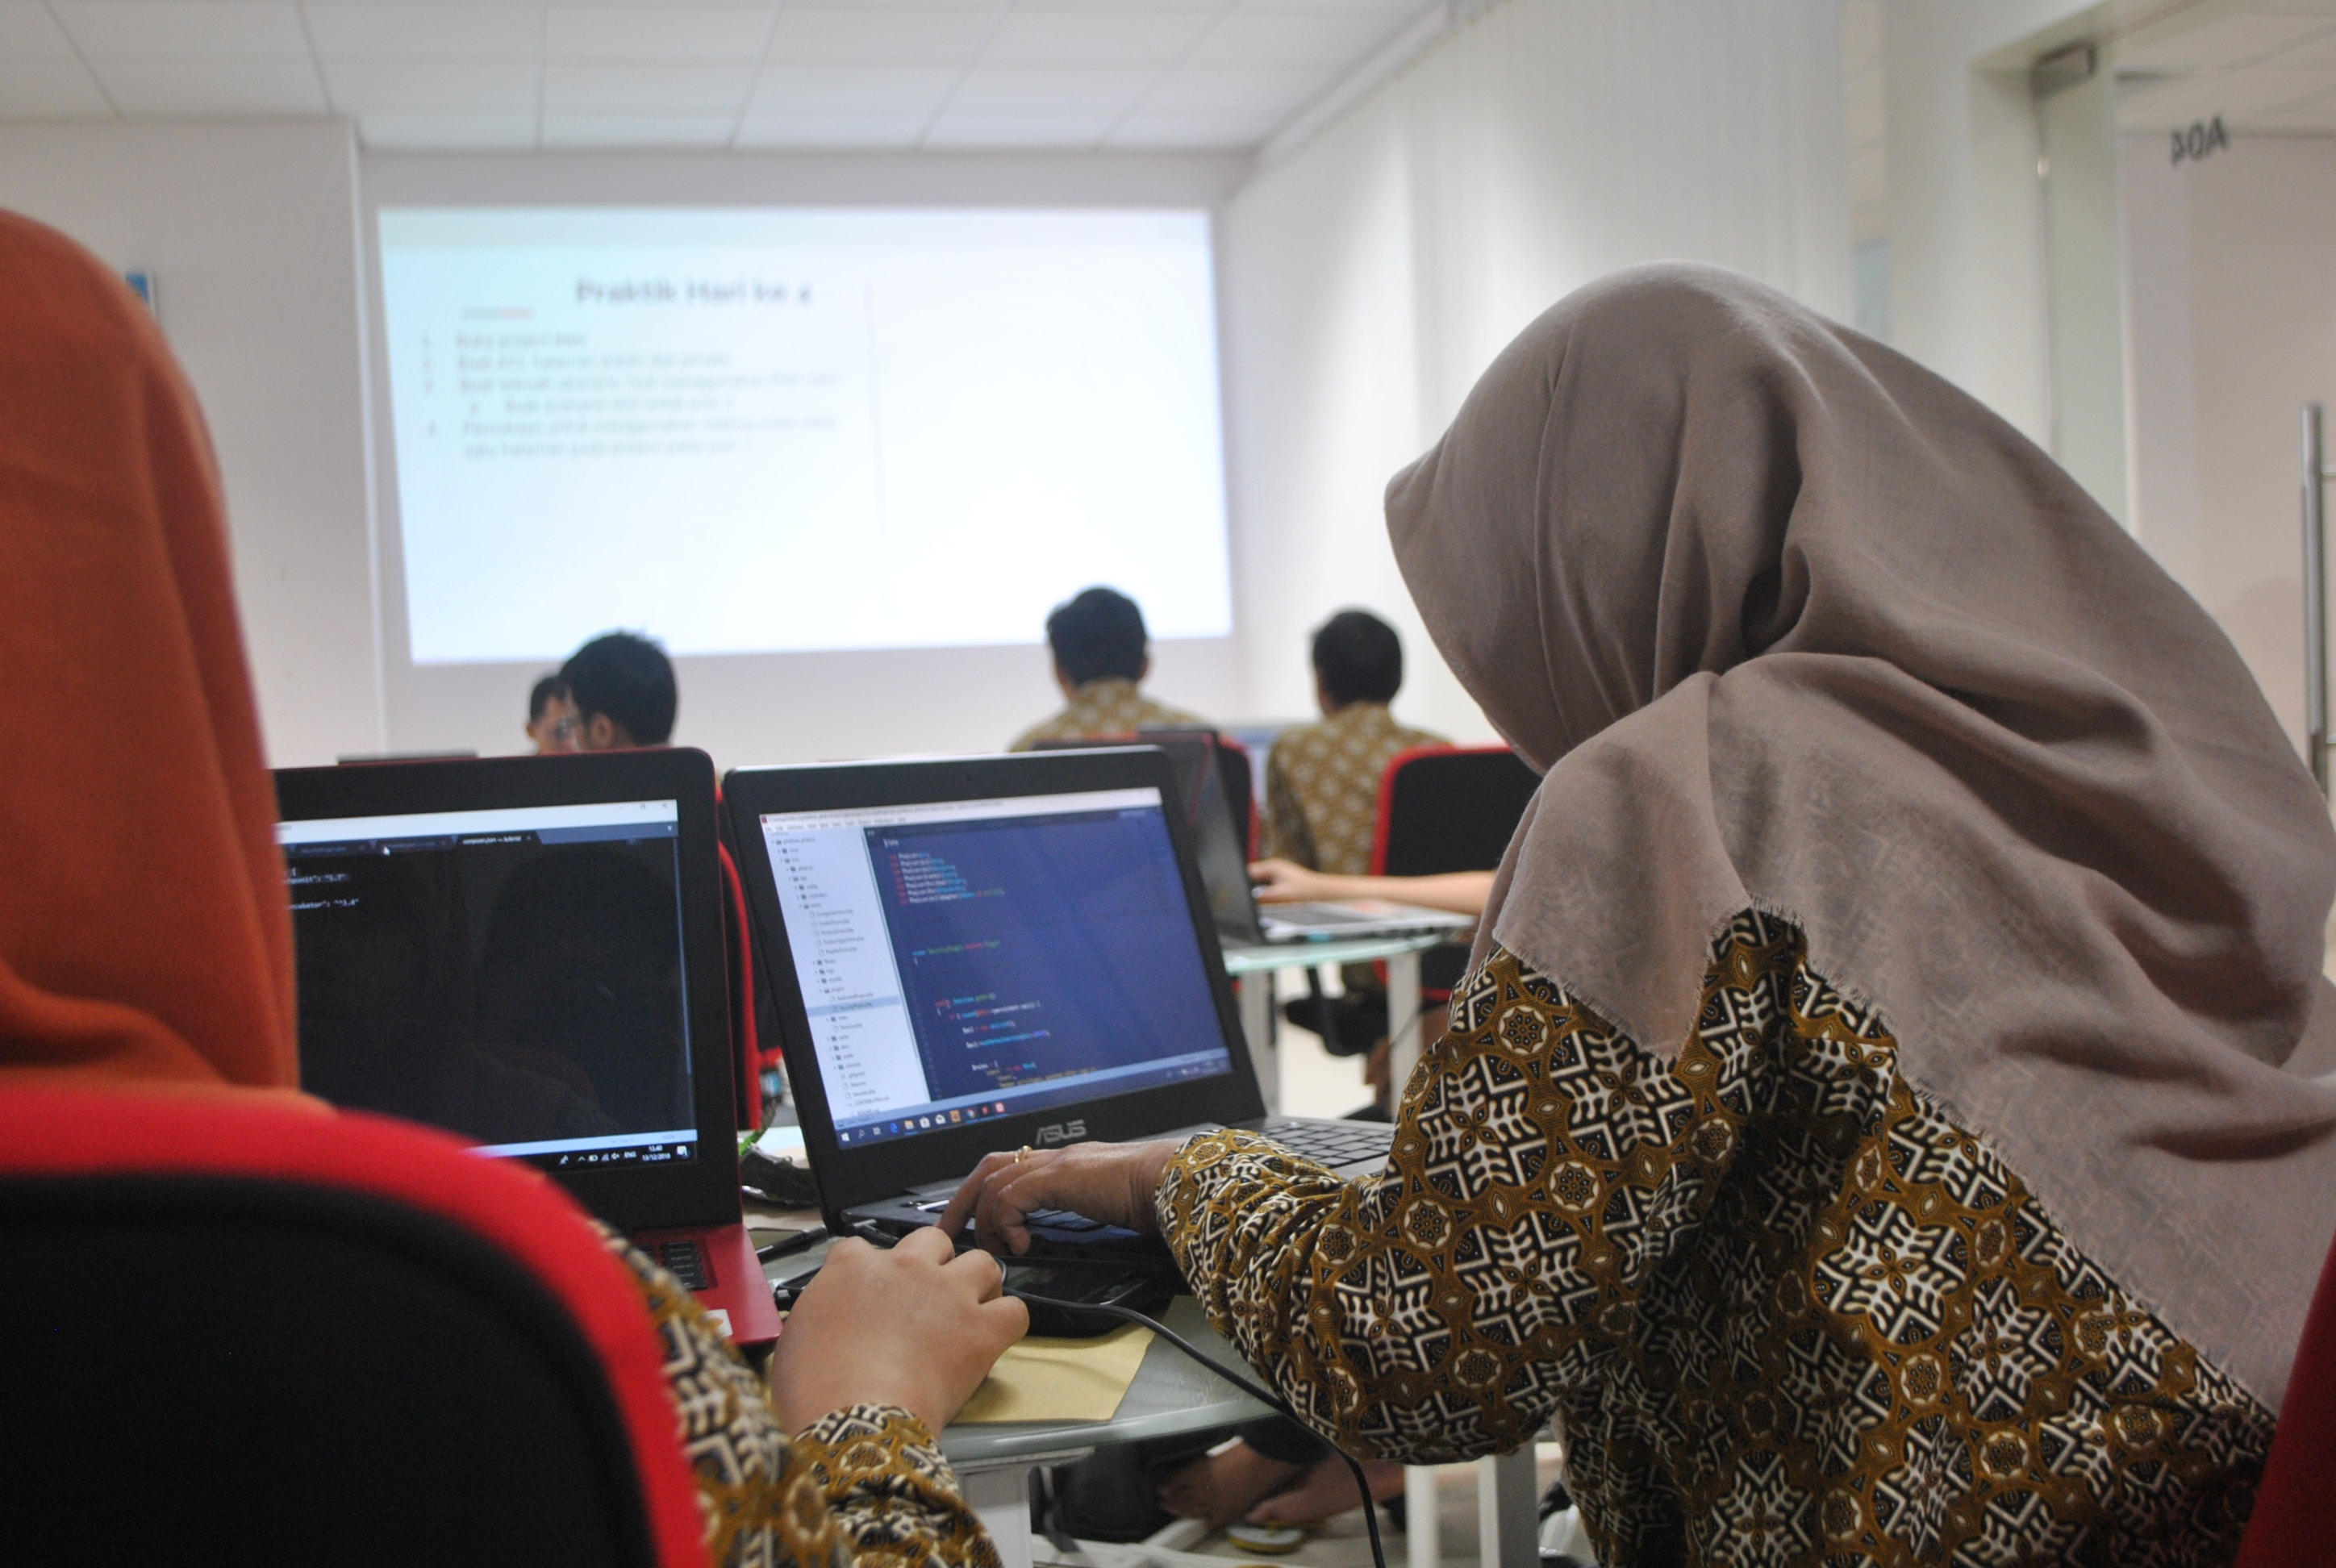 Two women in hijab at laptops in a classroom